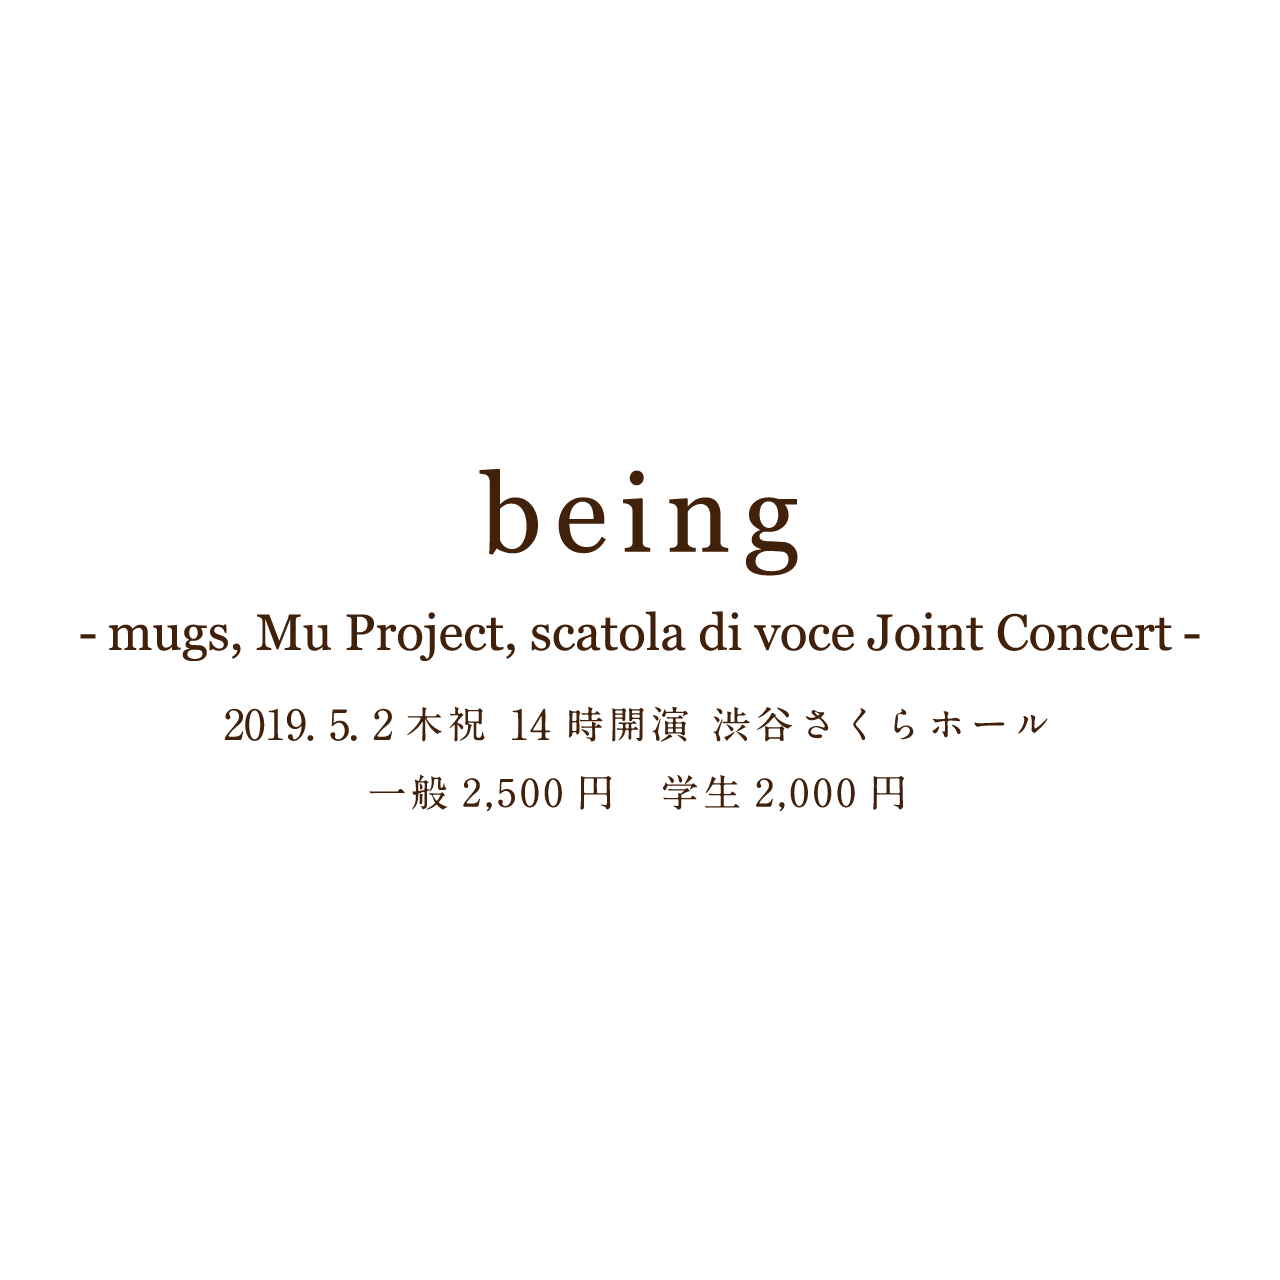 being -mugs, Mu Project, scatola di voce Joint Concert-